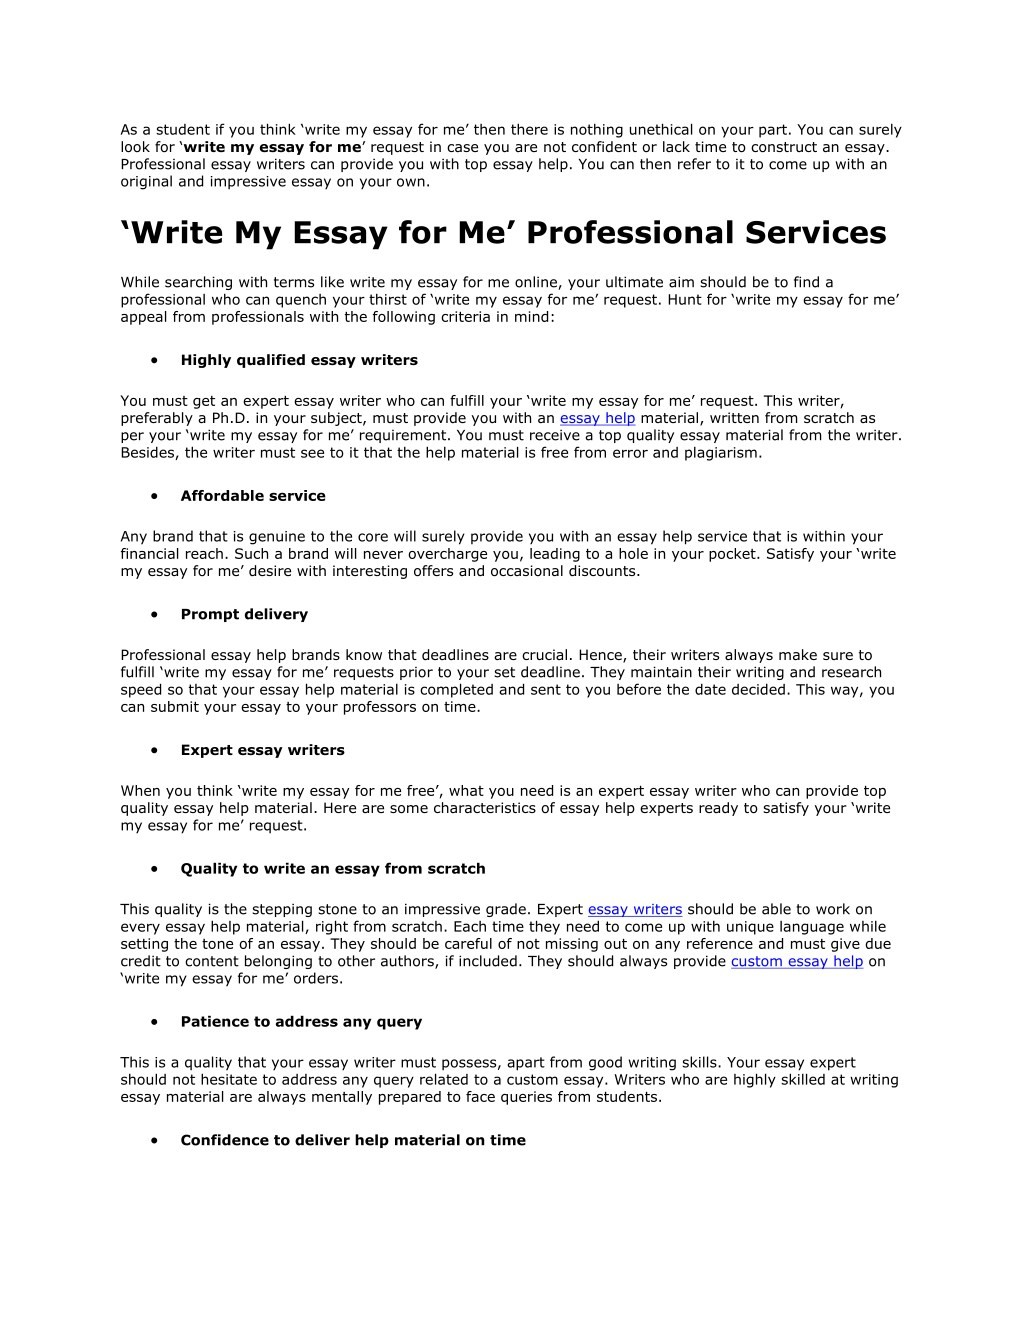 017 Write My Essay For Me Example As Student If You Think Surprising College Application Free Online Uk Large